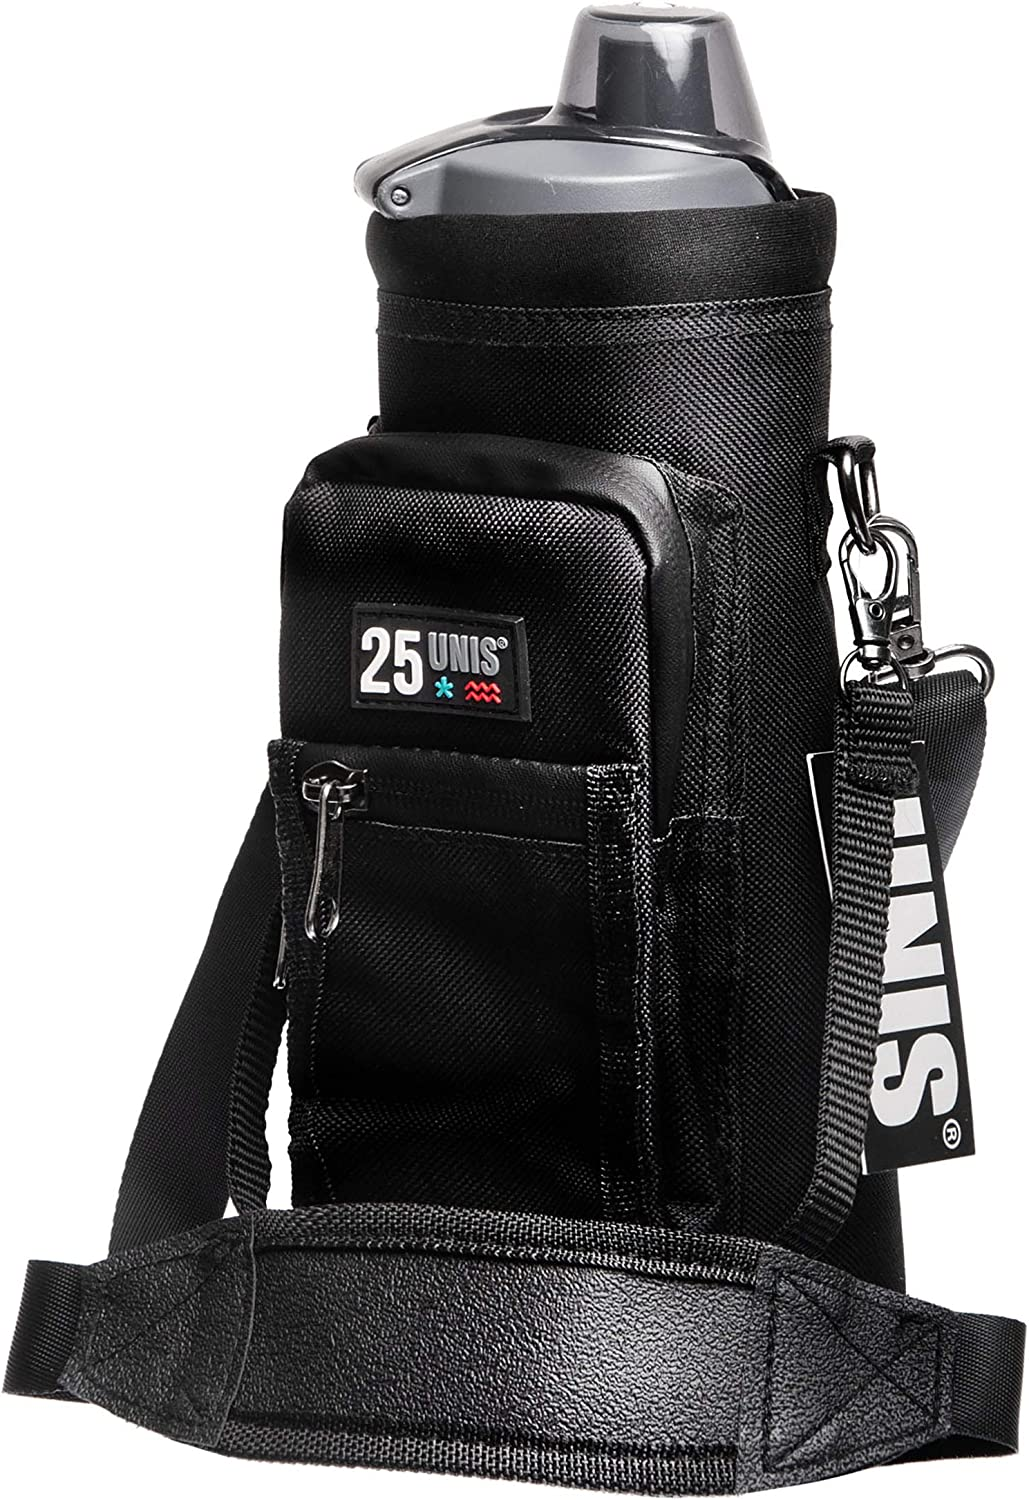 UNIS Water Bottle Holder 25oz Insulated Drink Pouch Bag Carrier Sling with Adjustable Strap and Storage Pocket